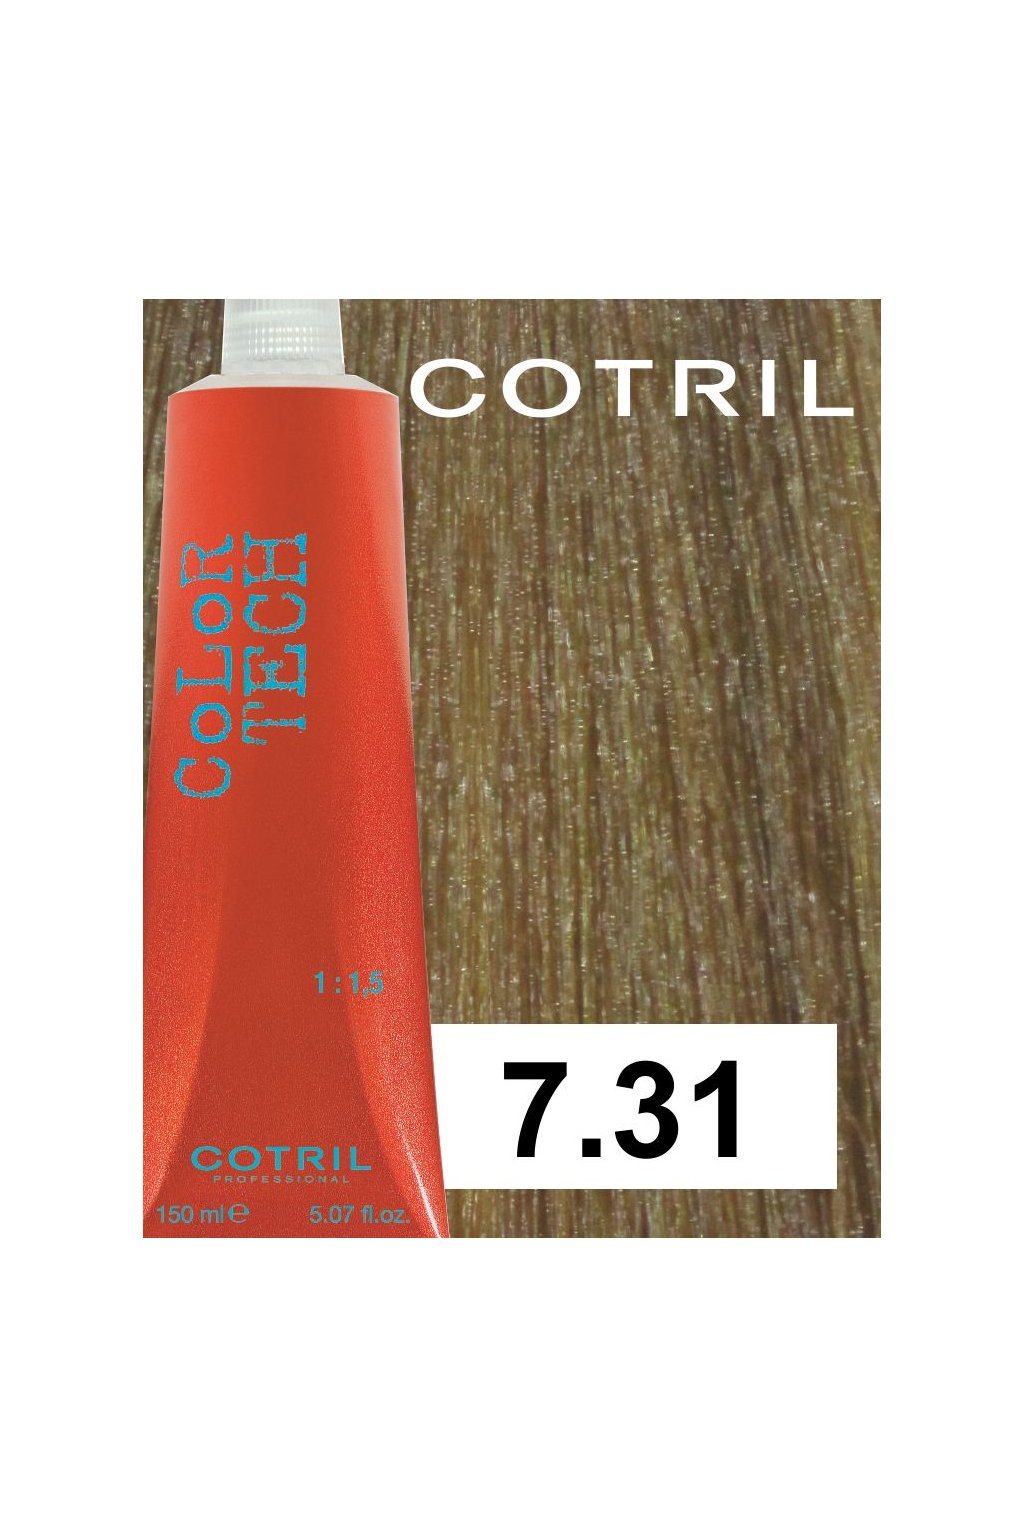 7 31 ct cotril